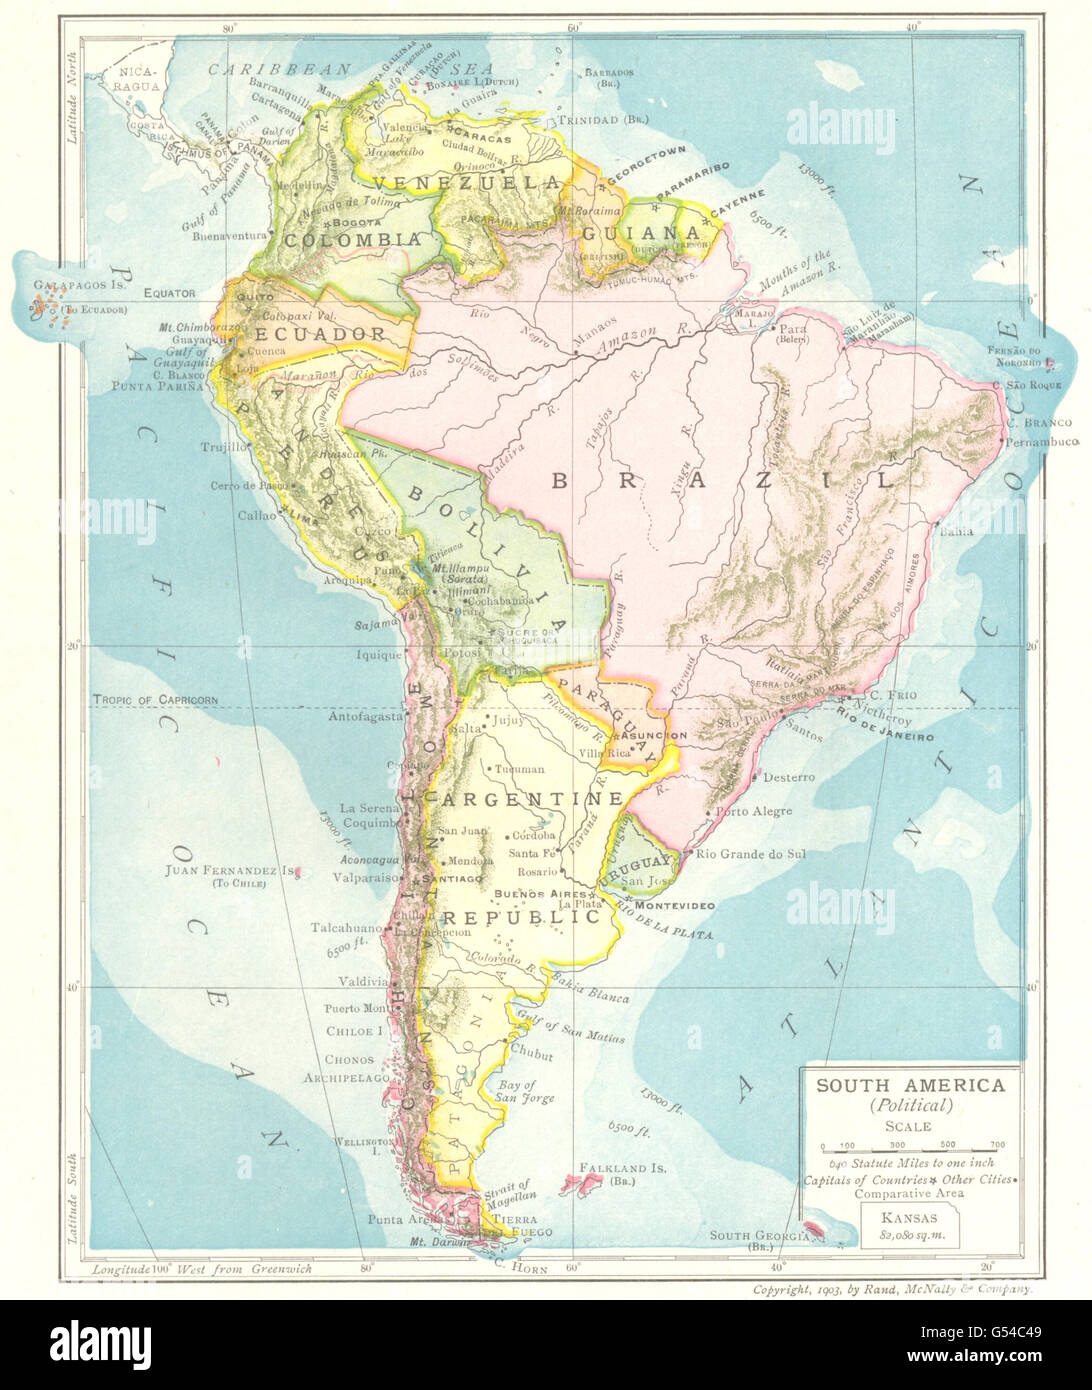 South America Political Guiana Brazil Bolivia Argentine Republic